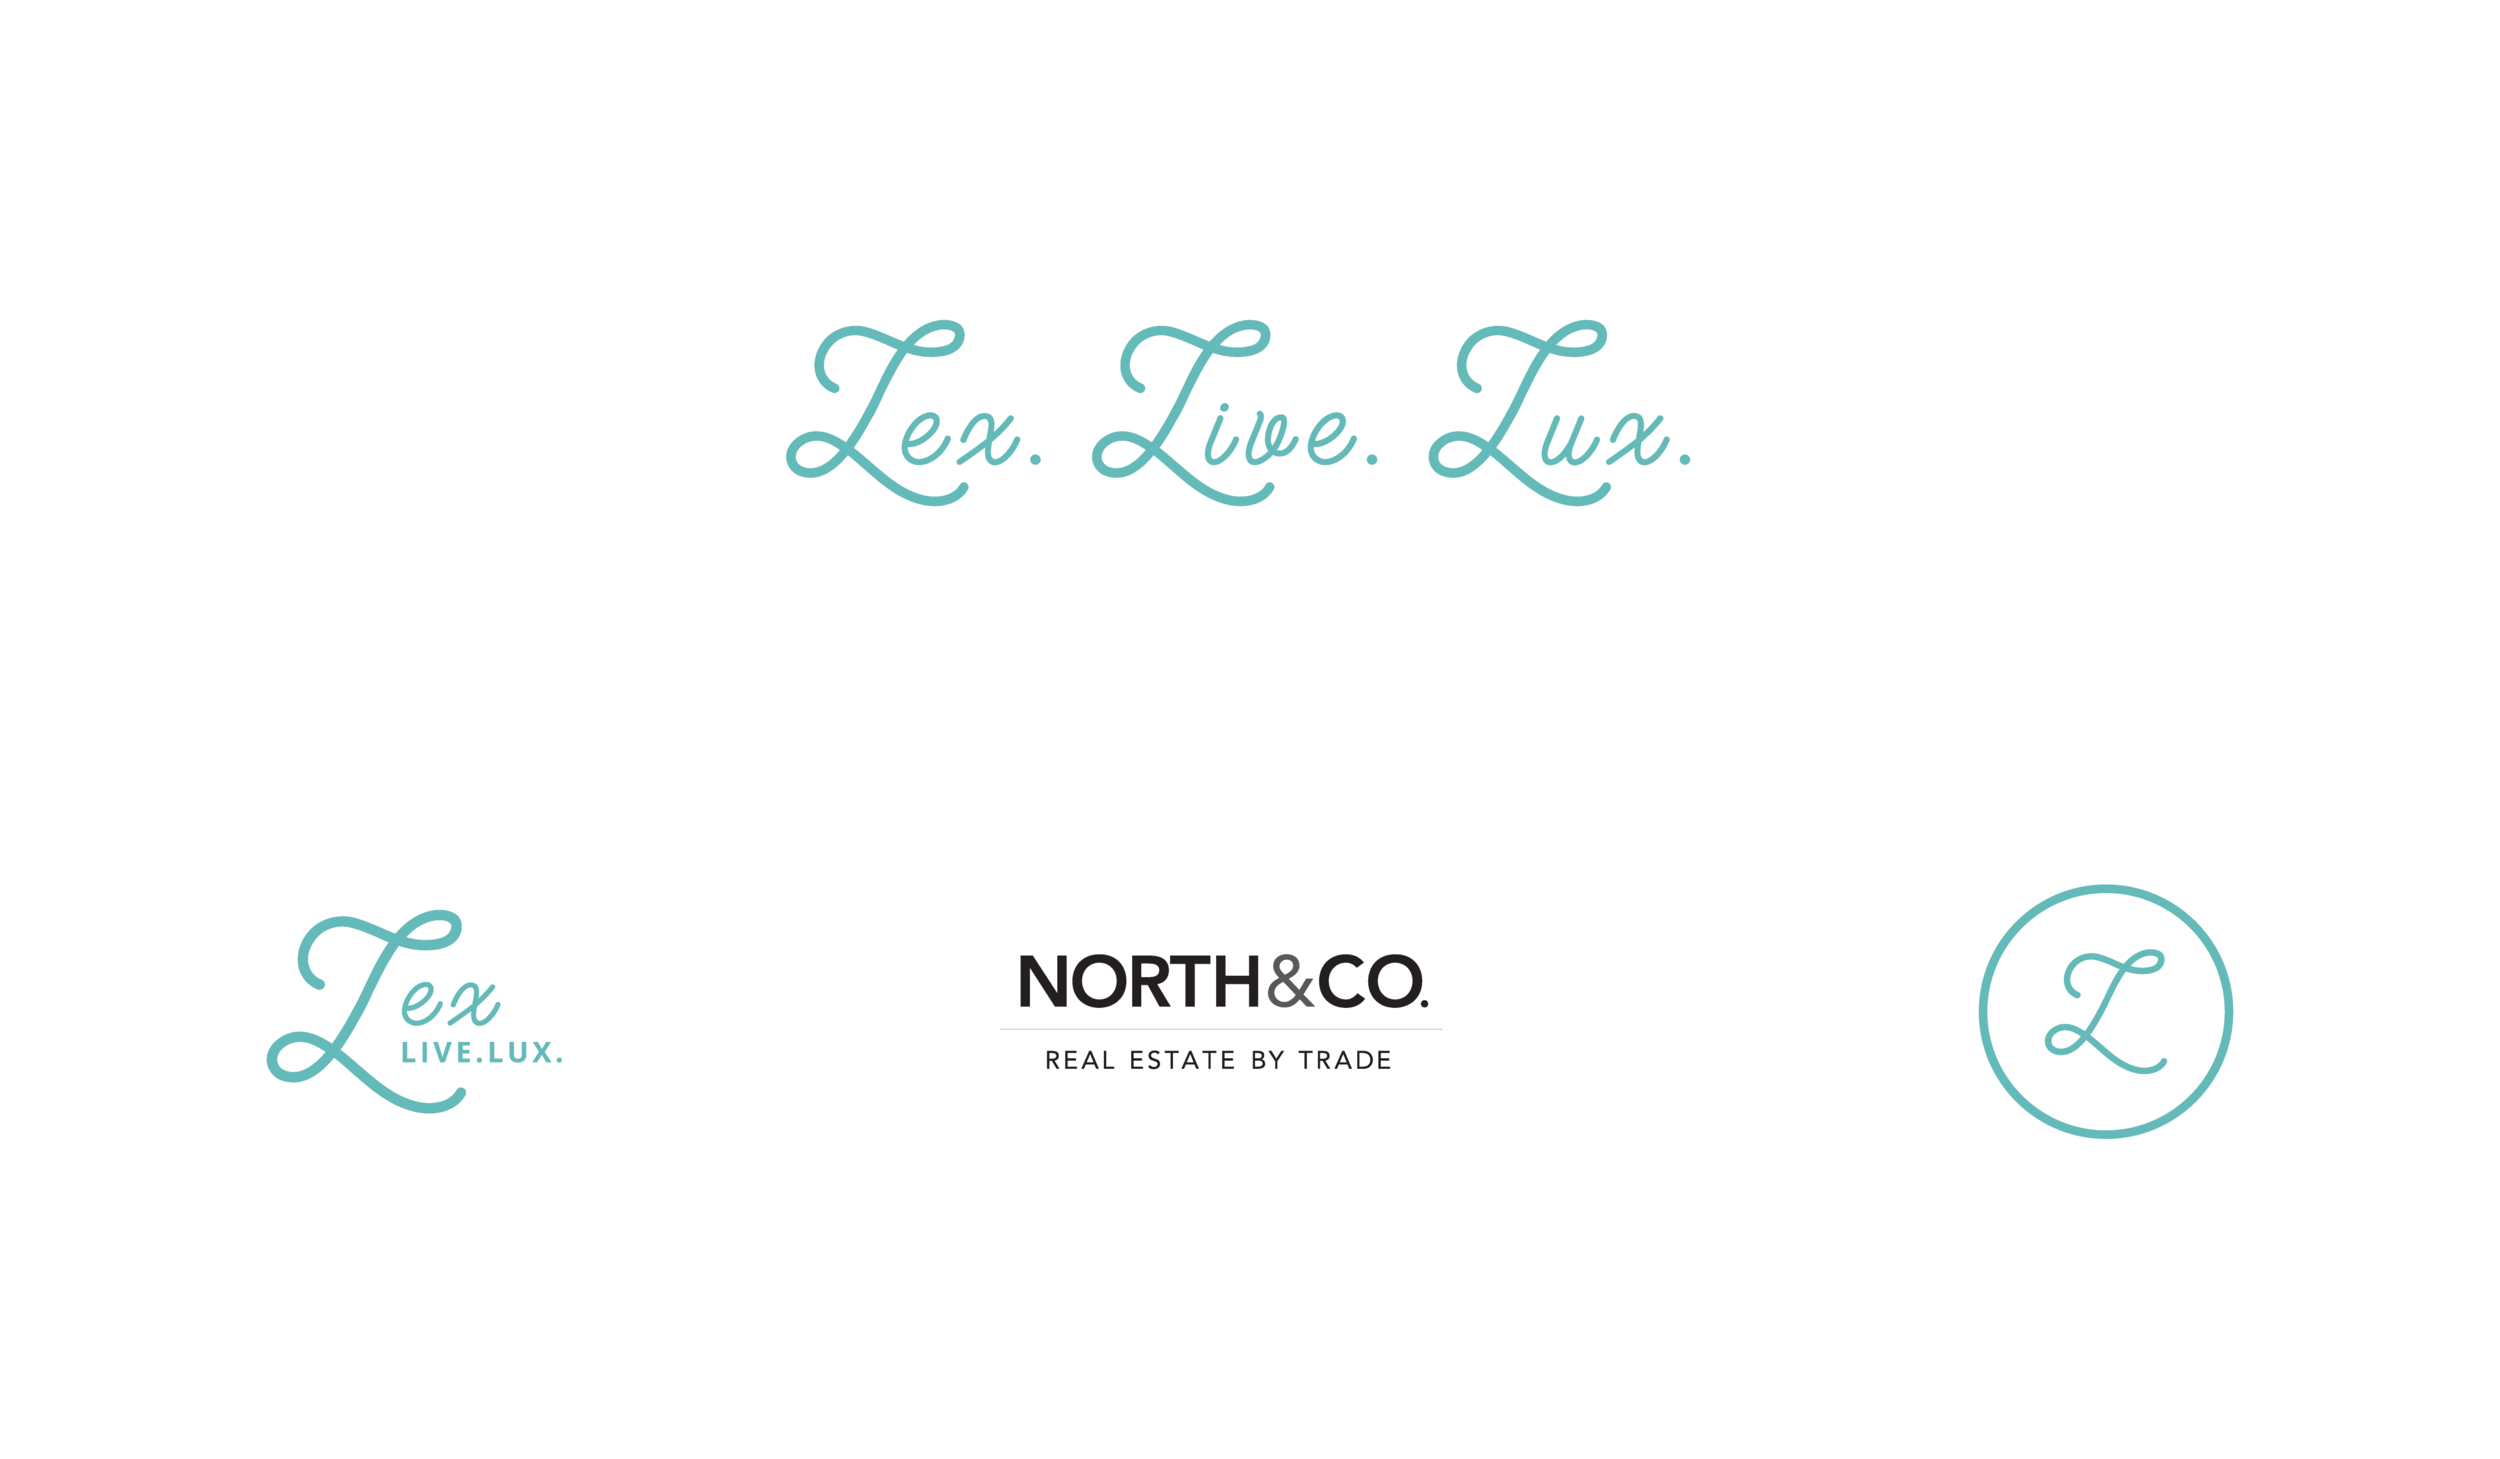 Branding and Identity Design for Luxury Real Estate Agent